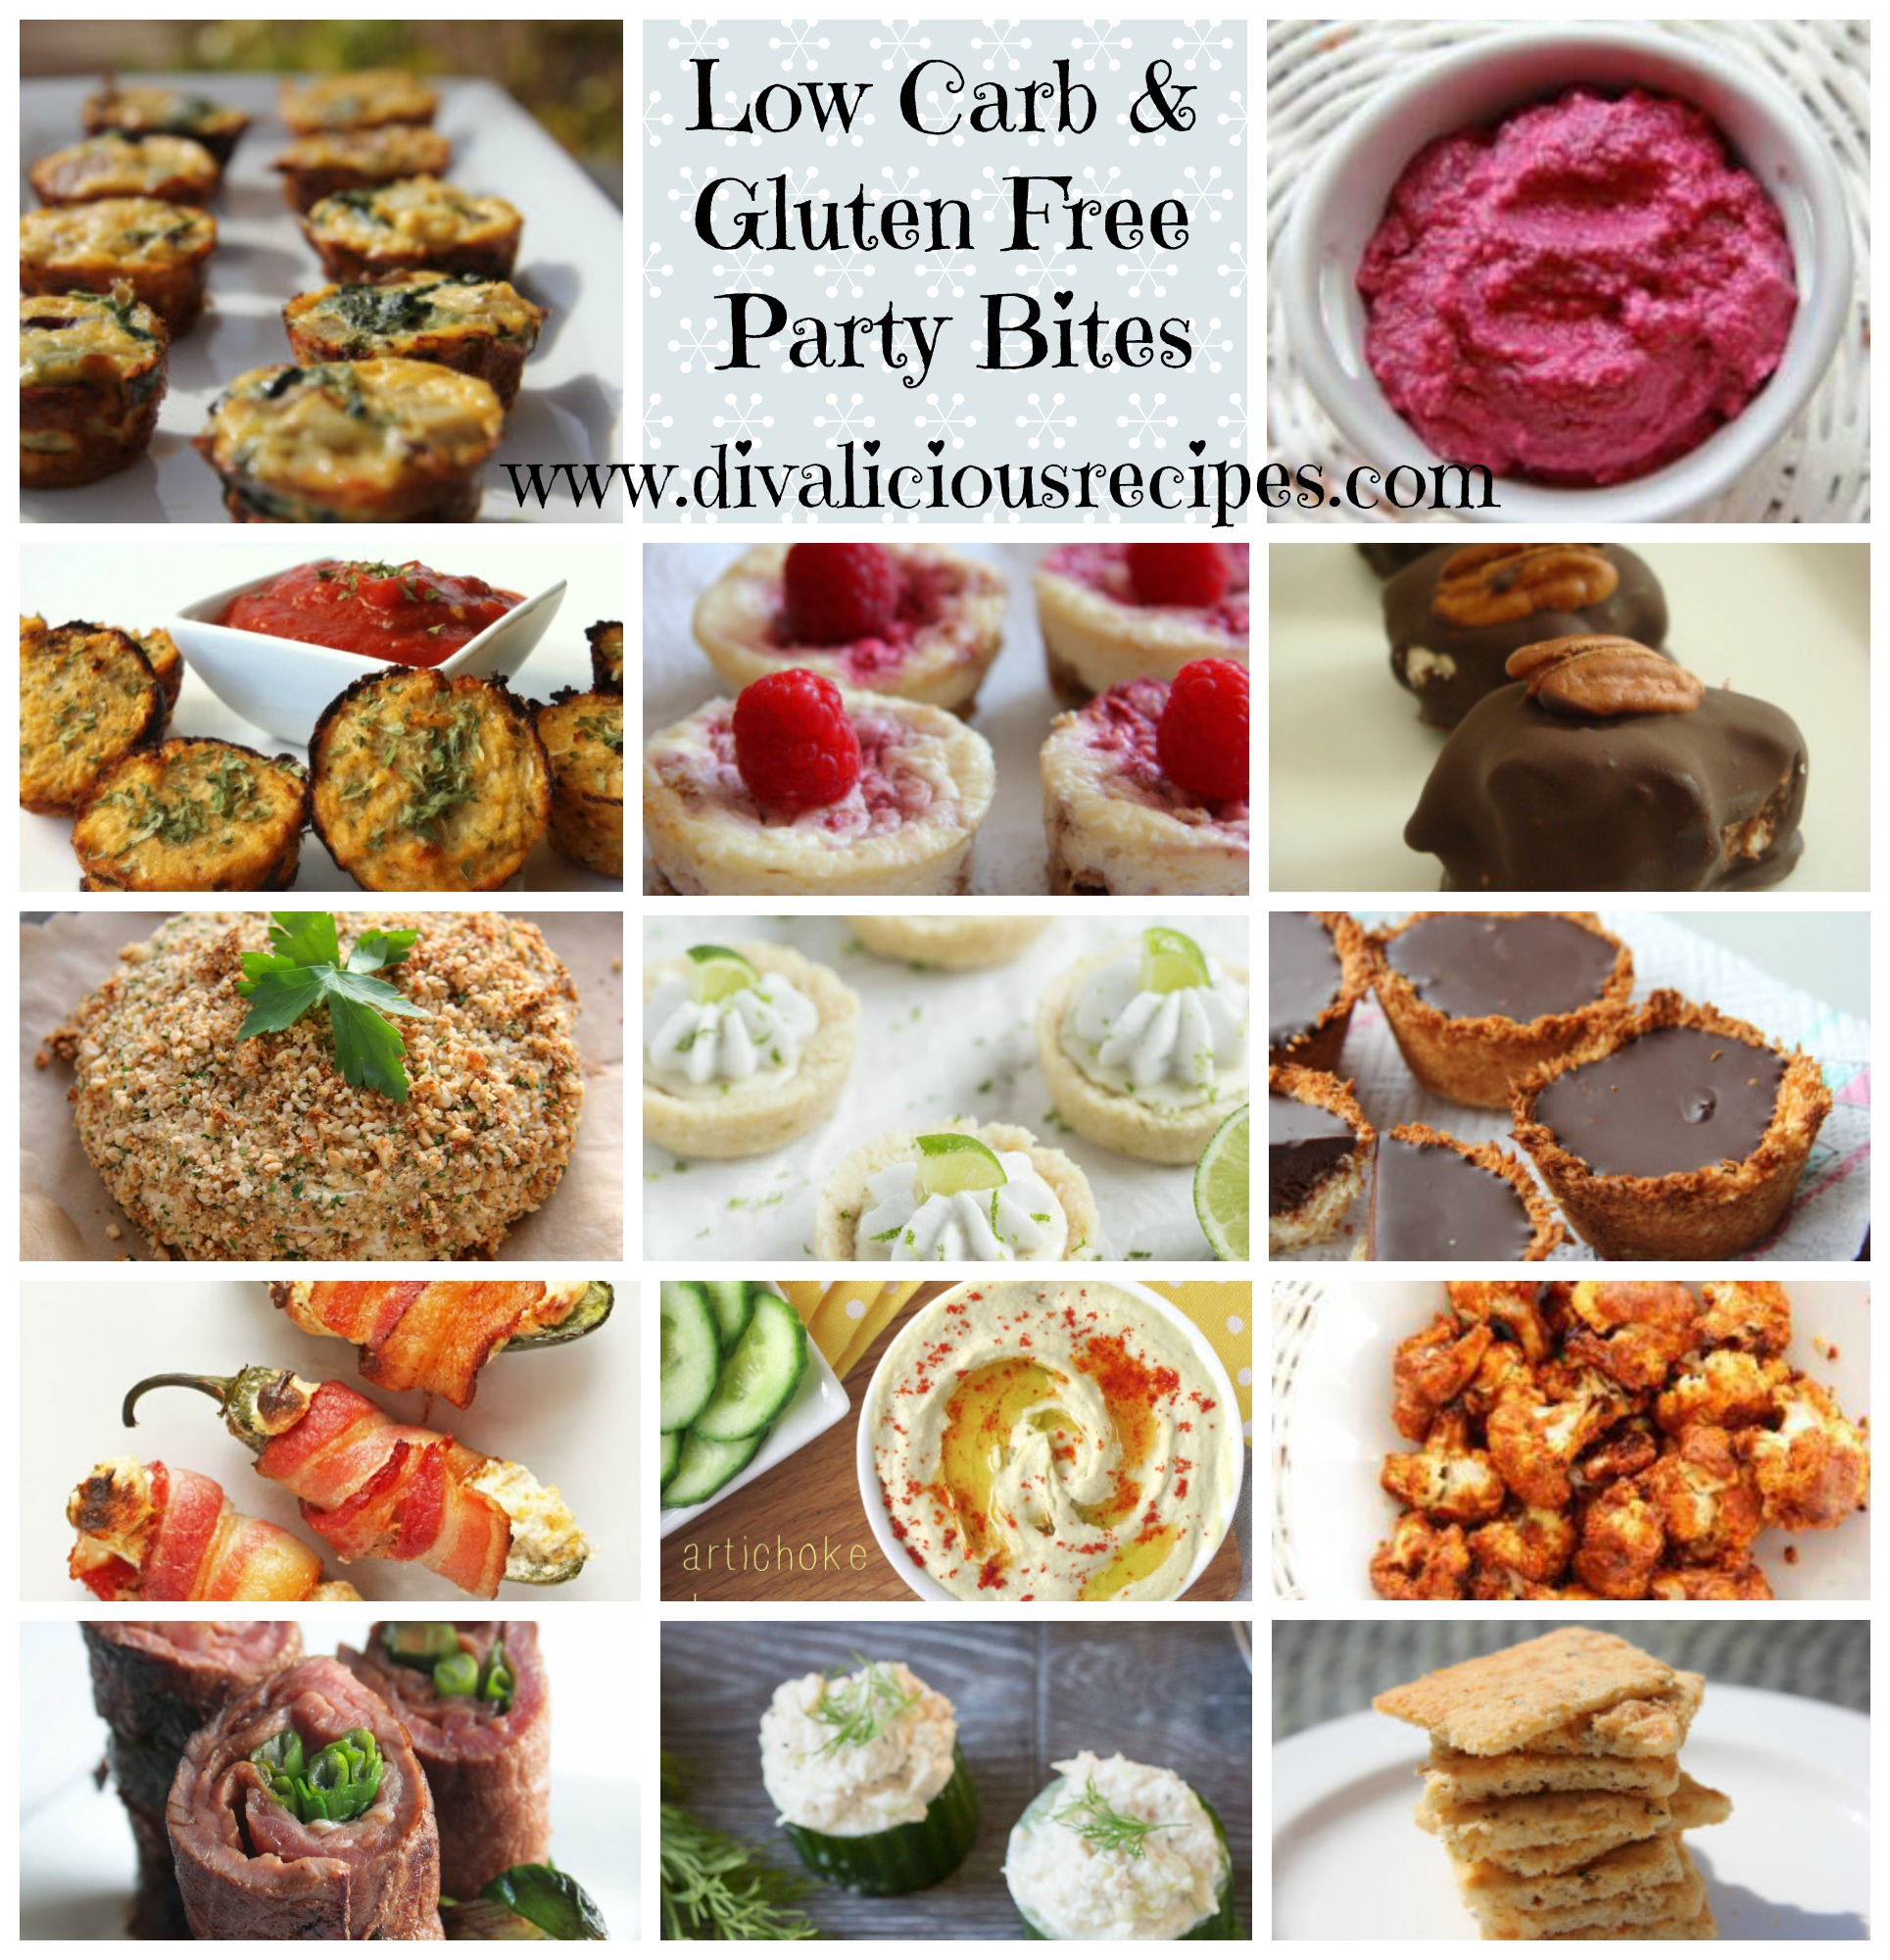 new years eve party bites low carb gluten free divalicious recipes